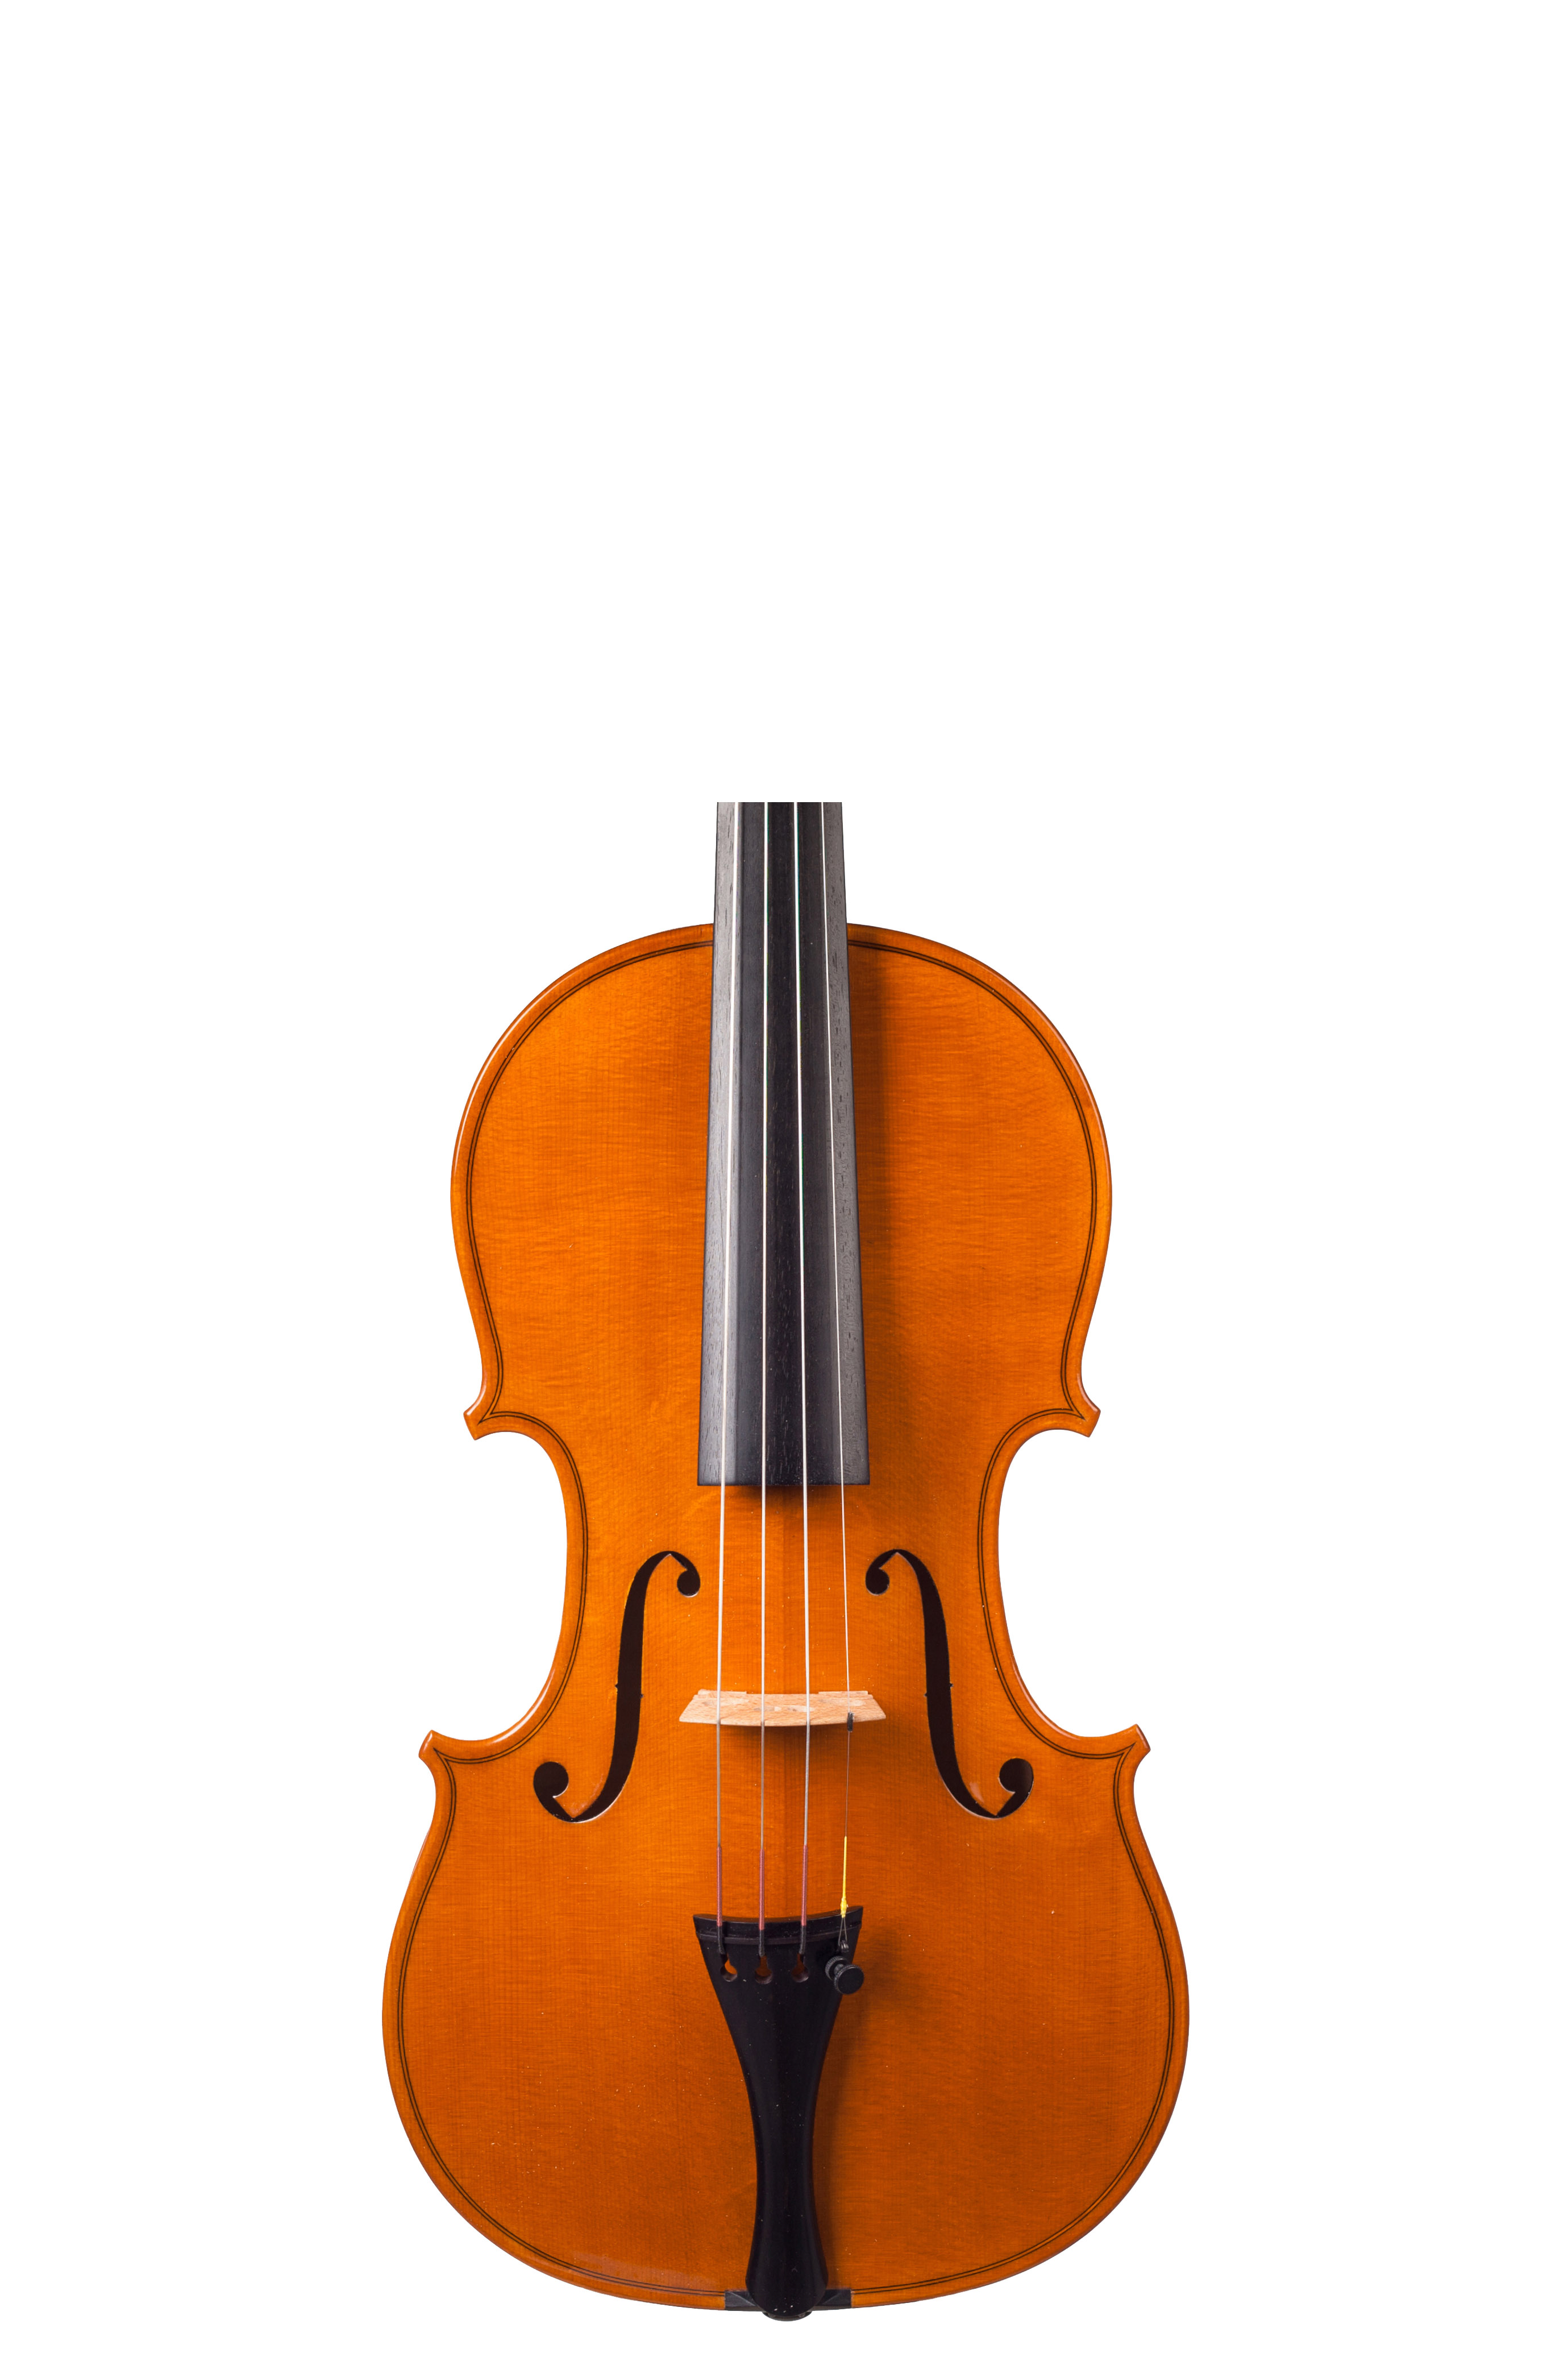 "Violin by Nicholas Gamberini, modello Antonio Stradivari ""Messiah"", 2018"